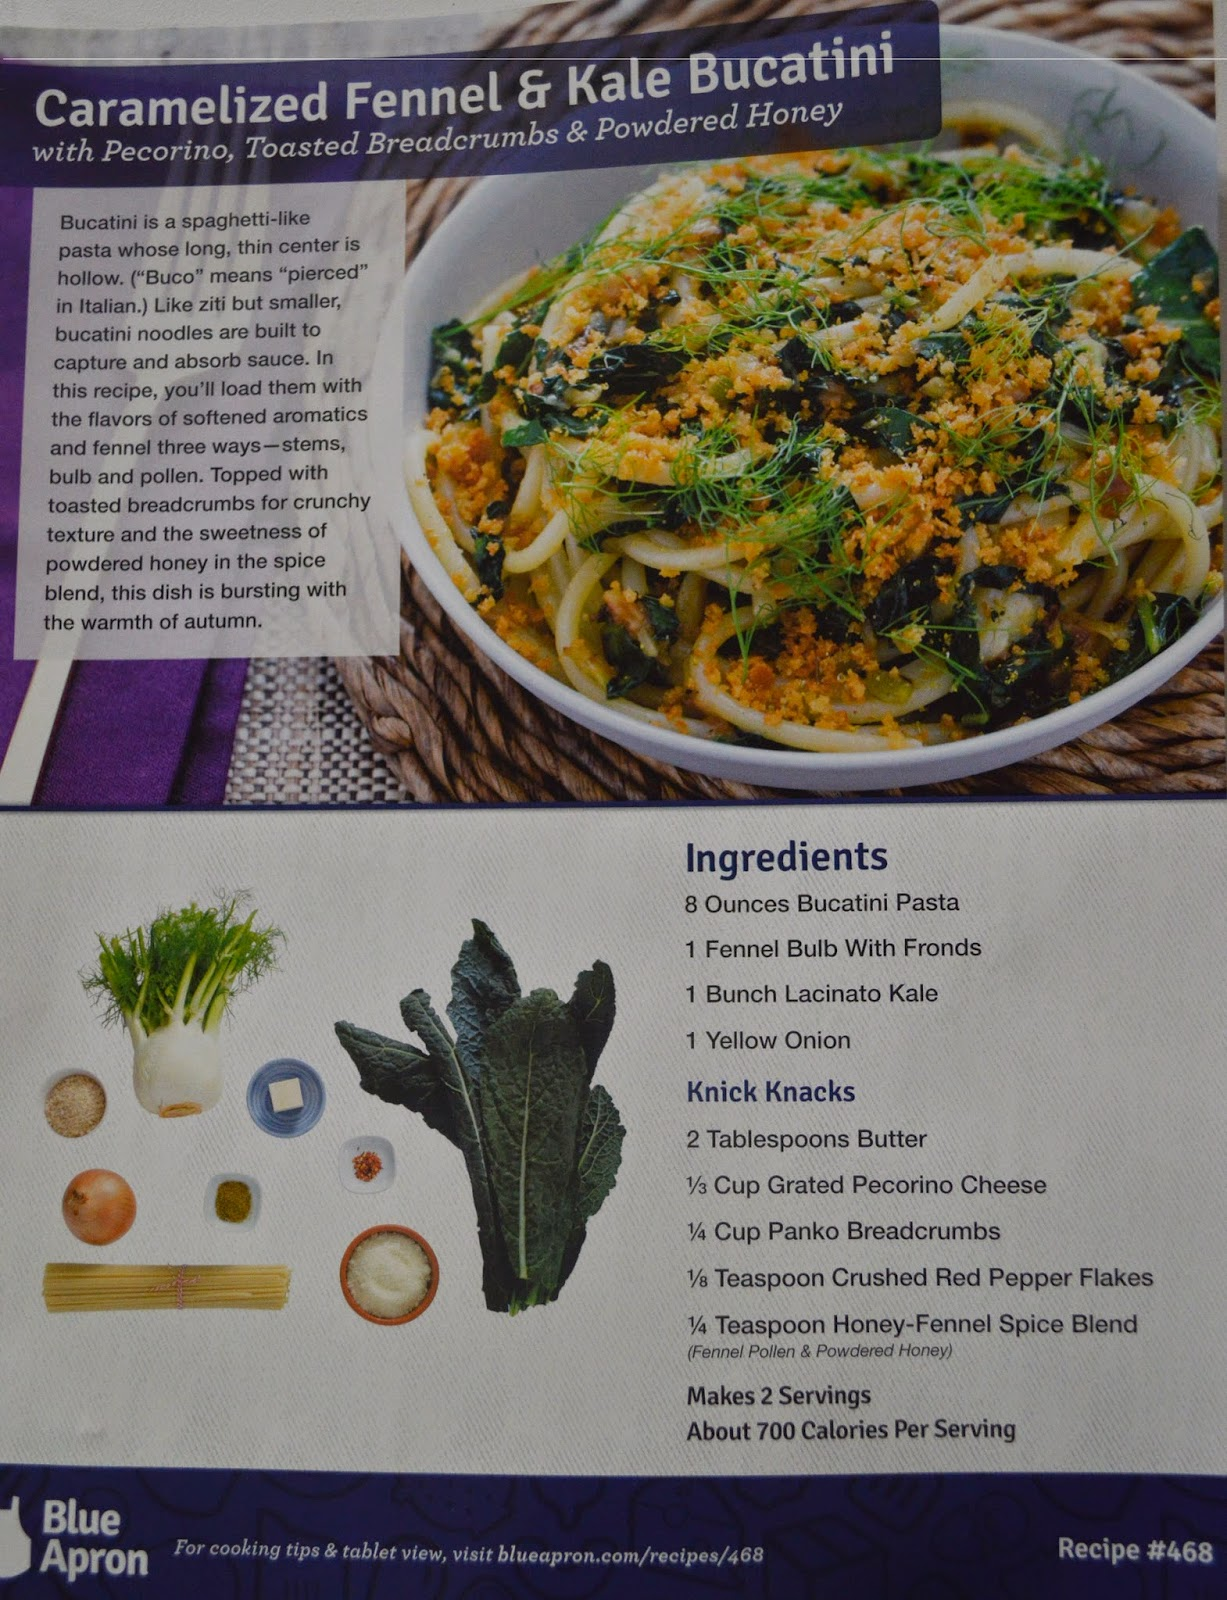 Blue apron bucatini - Lastly On The Third Evening Trey And I Made The Caramelized Fennel Kale Bucatini If You Couldn T Already Guess I Began With The Recipe Card